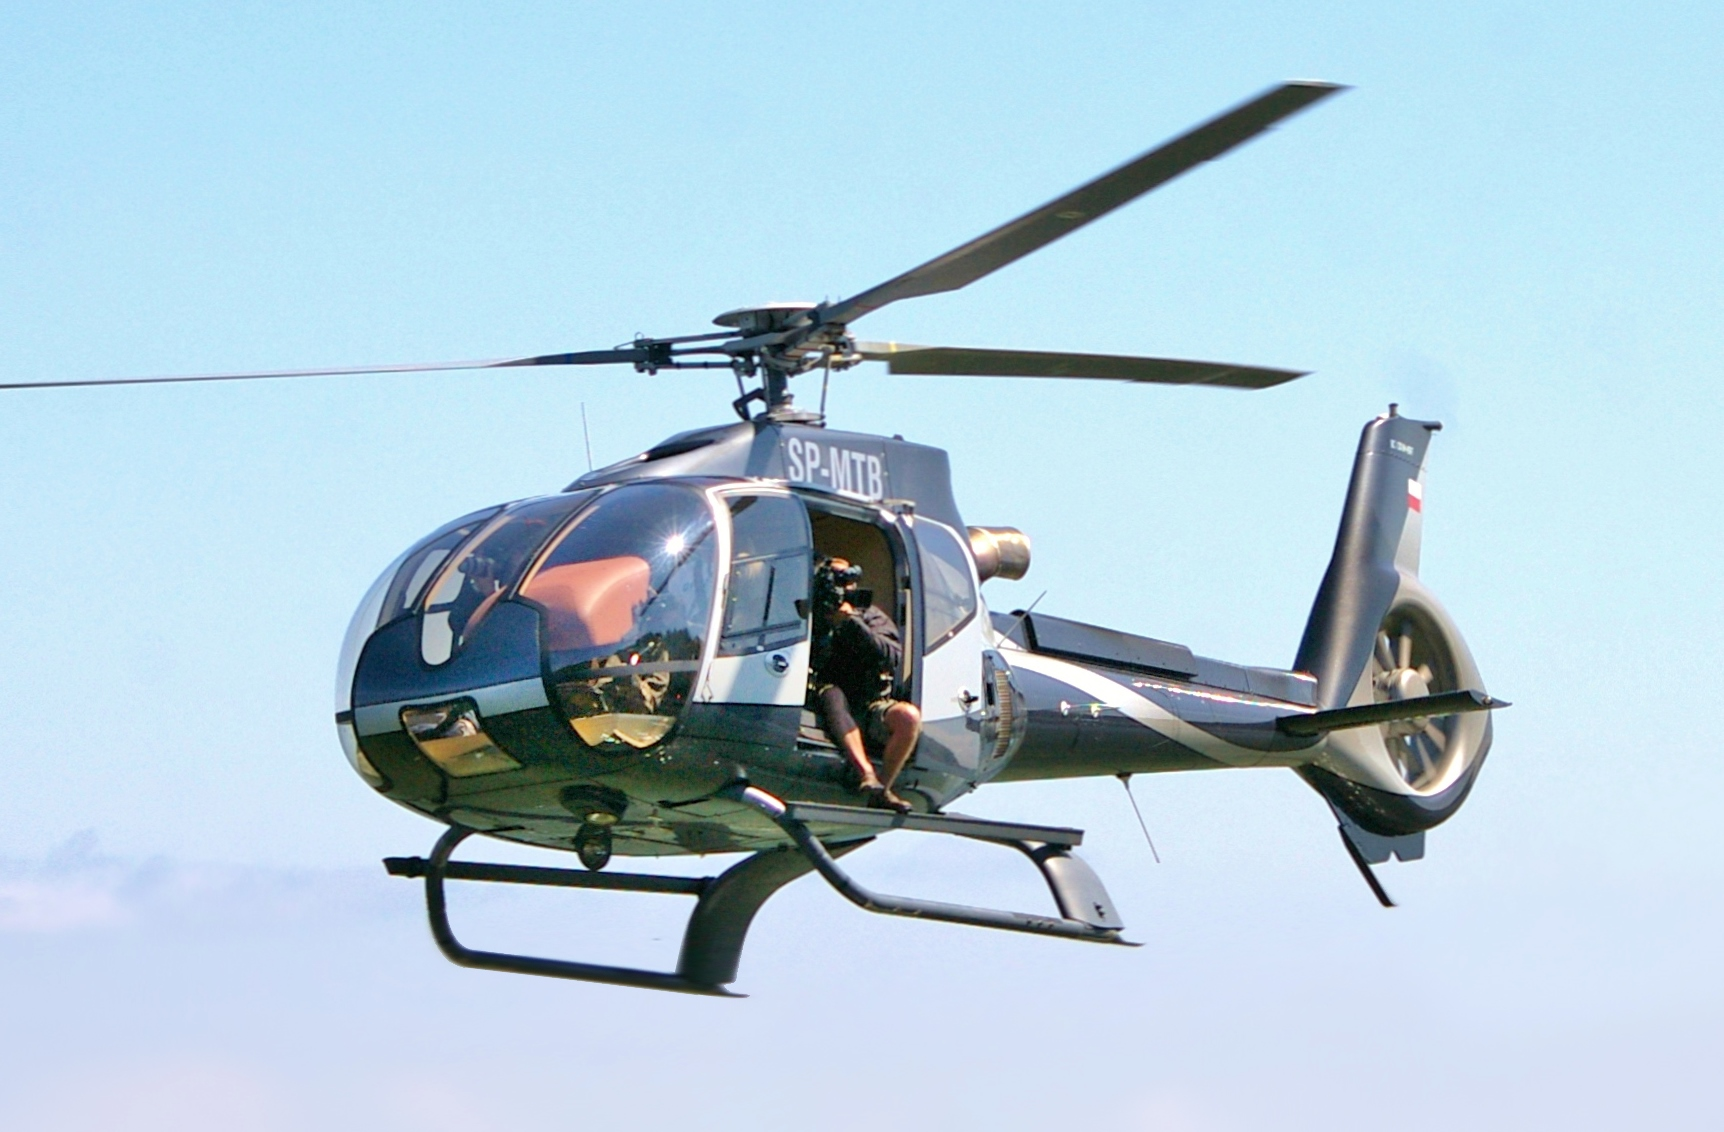 https://upload.wikimedia.org/wikipedia/commons/2/2a/Eurocopter_130_SP-MTB_3_%28modified%29.jpg